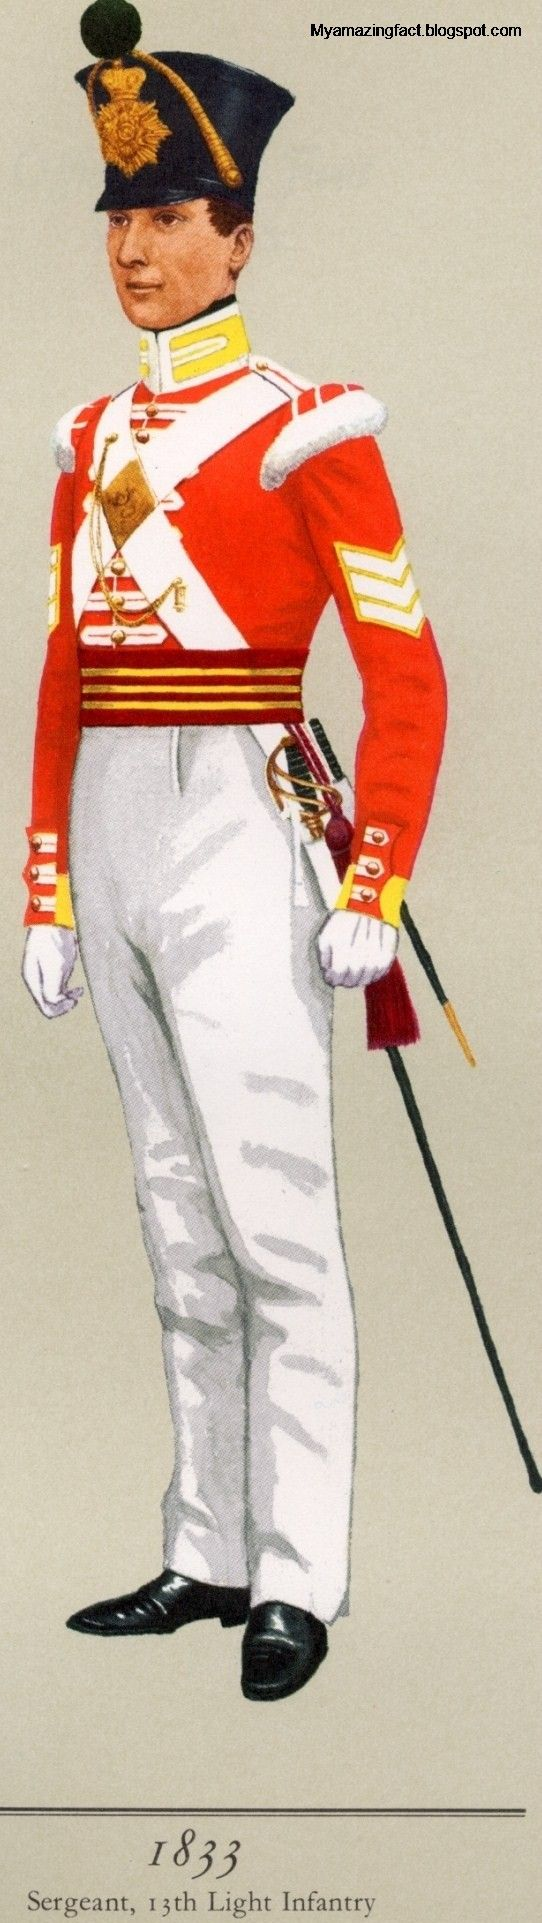 sport life: Infantry Uniforms of the British Army 1790-1846